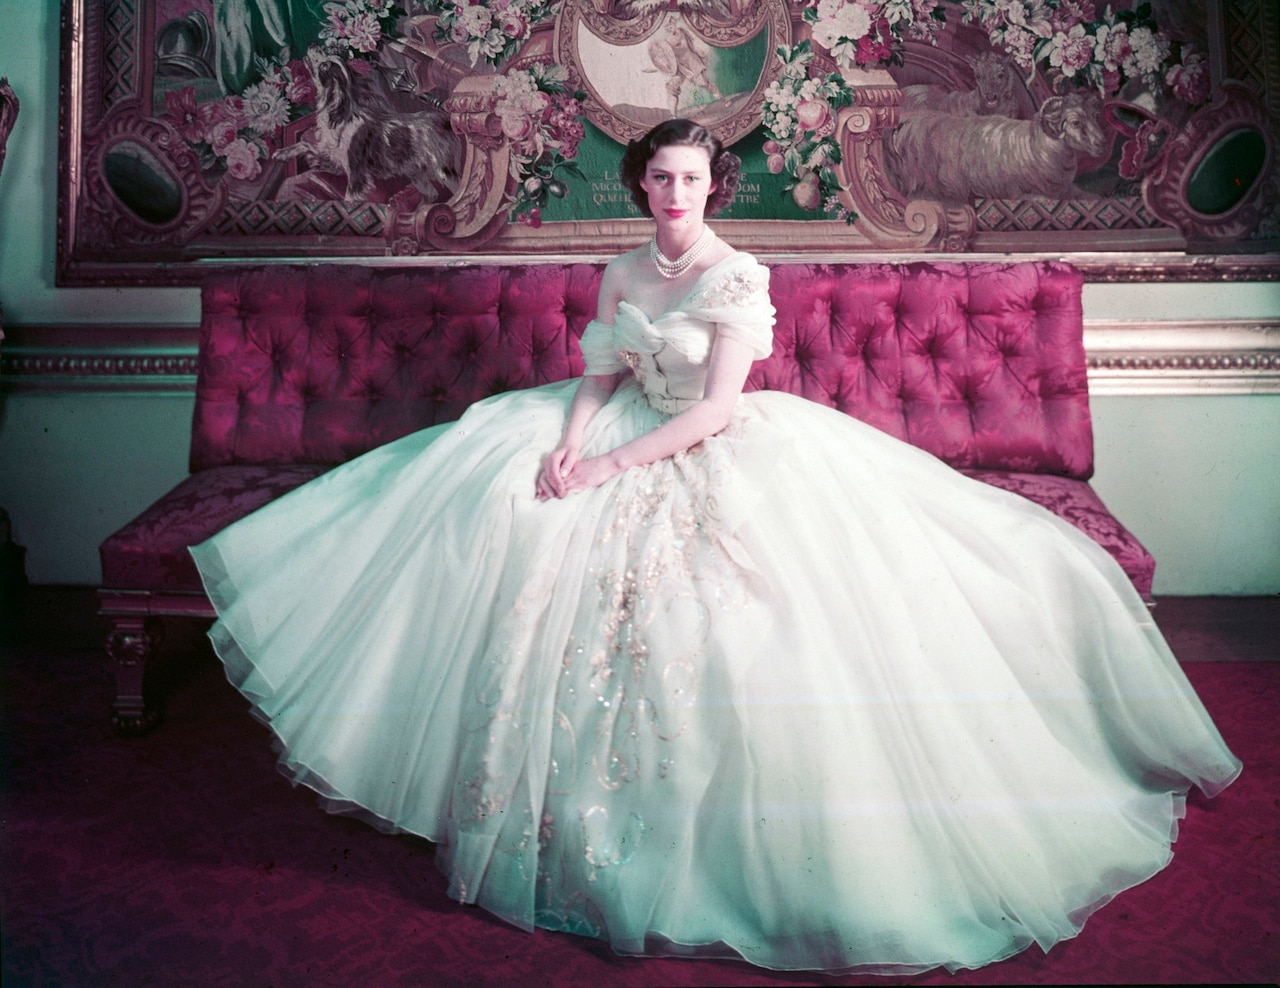 Princess Margaret's gown